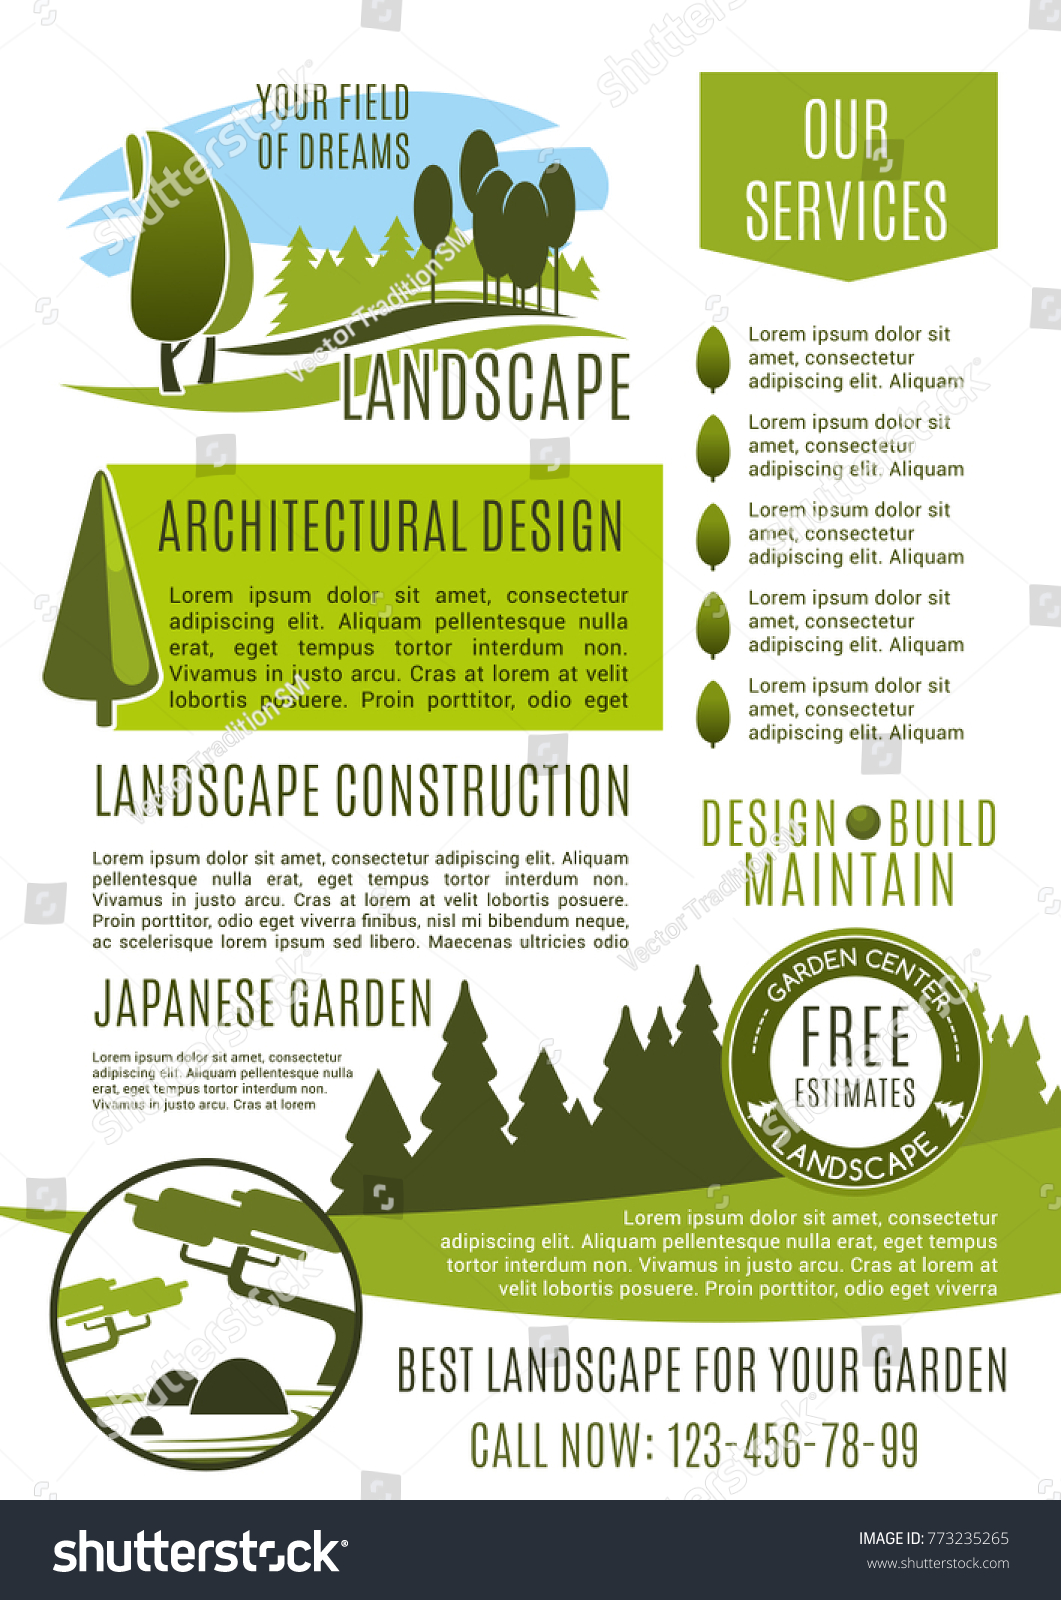 Landscape Design Company Business Banner Template Stock Vector Royalty Free 773235265,Personalized T Shirt Design For Burial